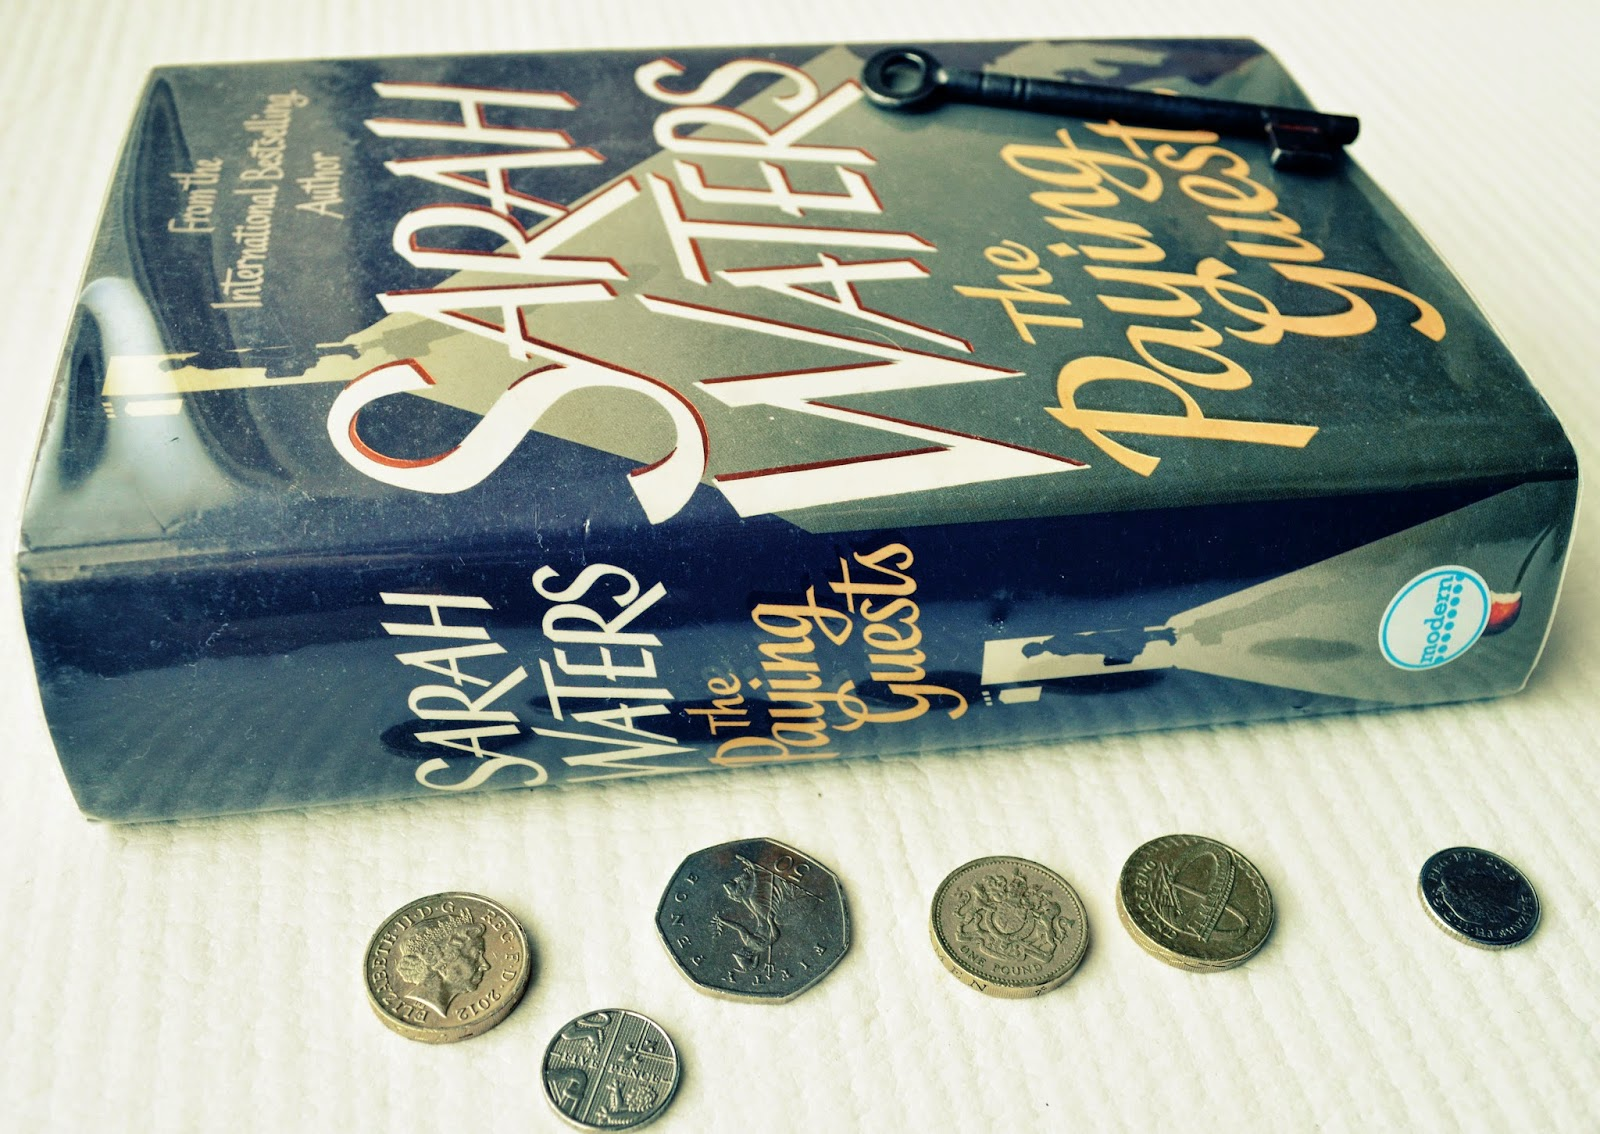 Sarah Waters, The Paying Guests, historical fiction, hardback, blog, book review, 1920's, lesbian